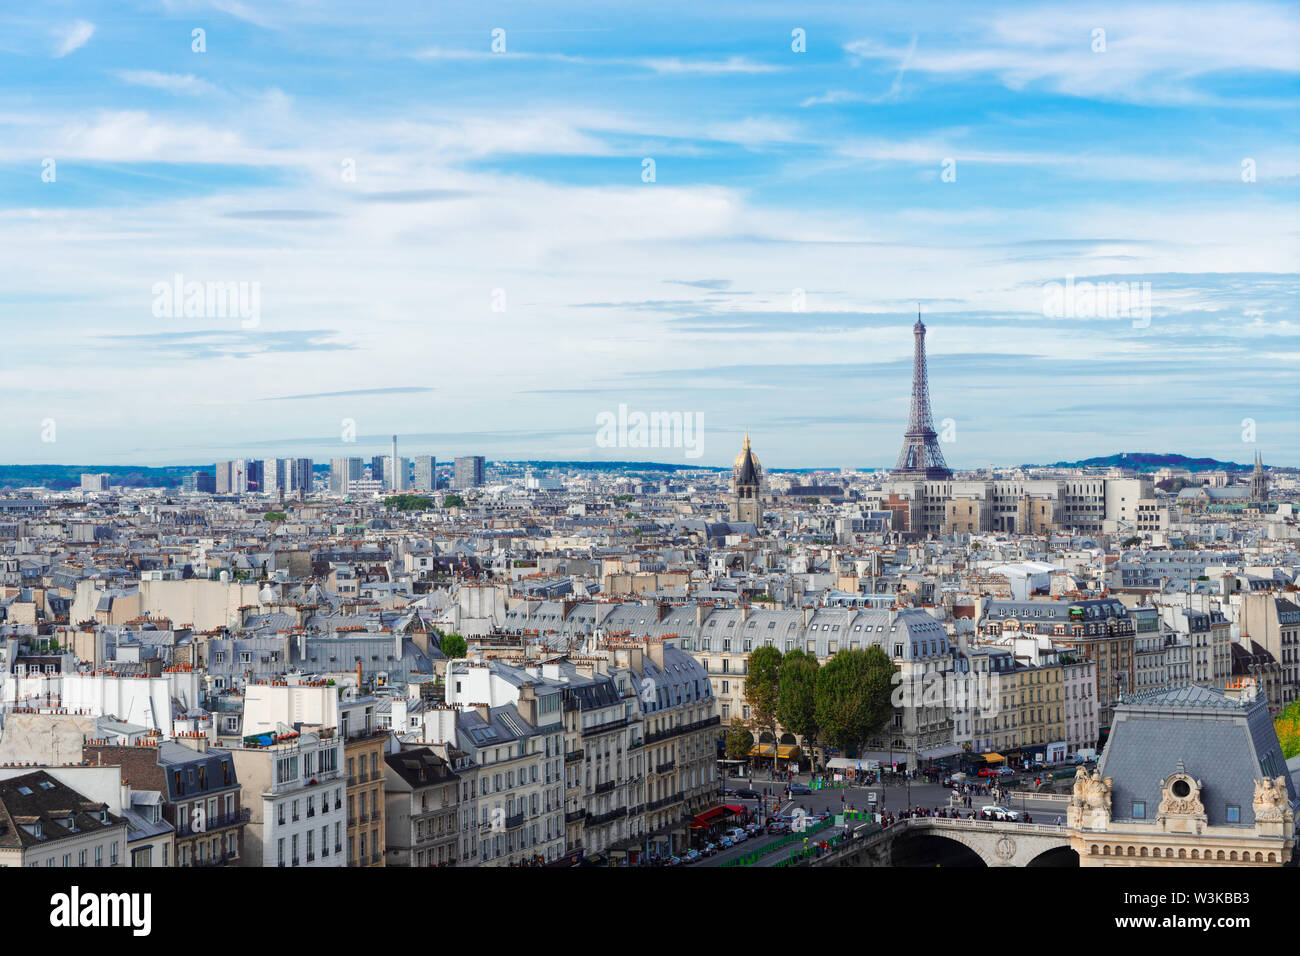 skyline of Paris city with eiffel tower from above in soft morning light with cloudscape, France - Stock Image